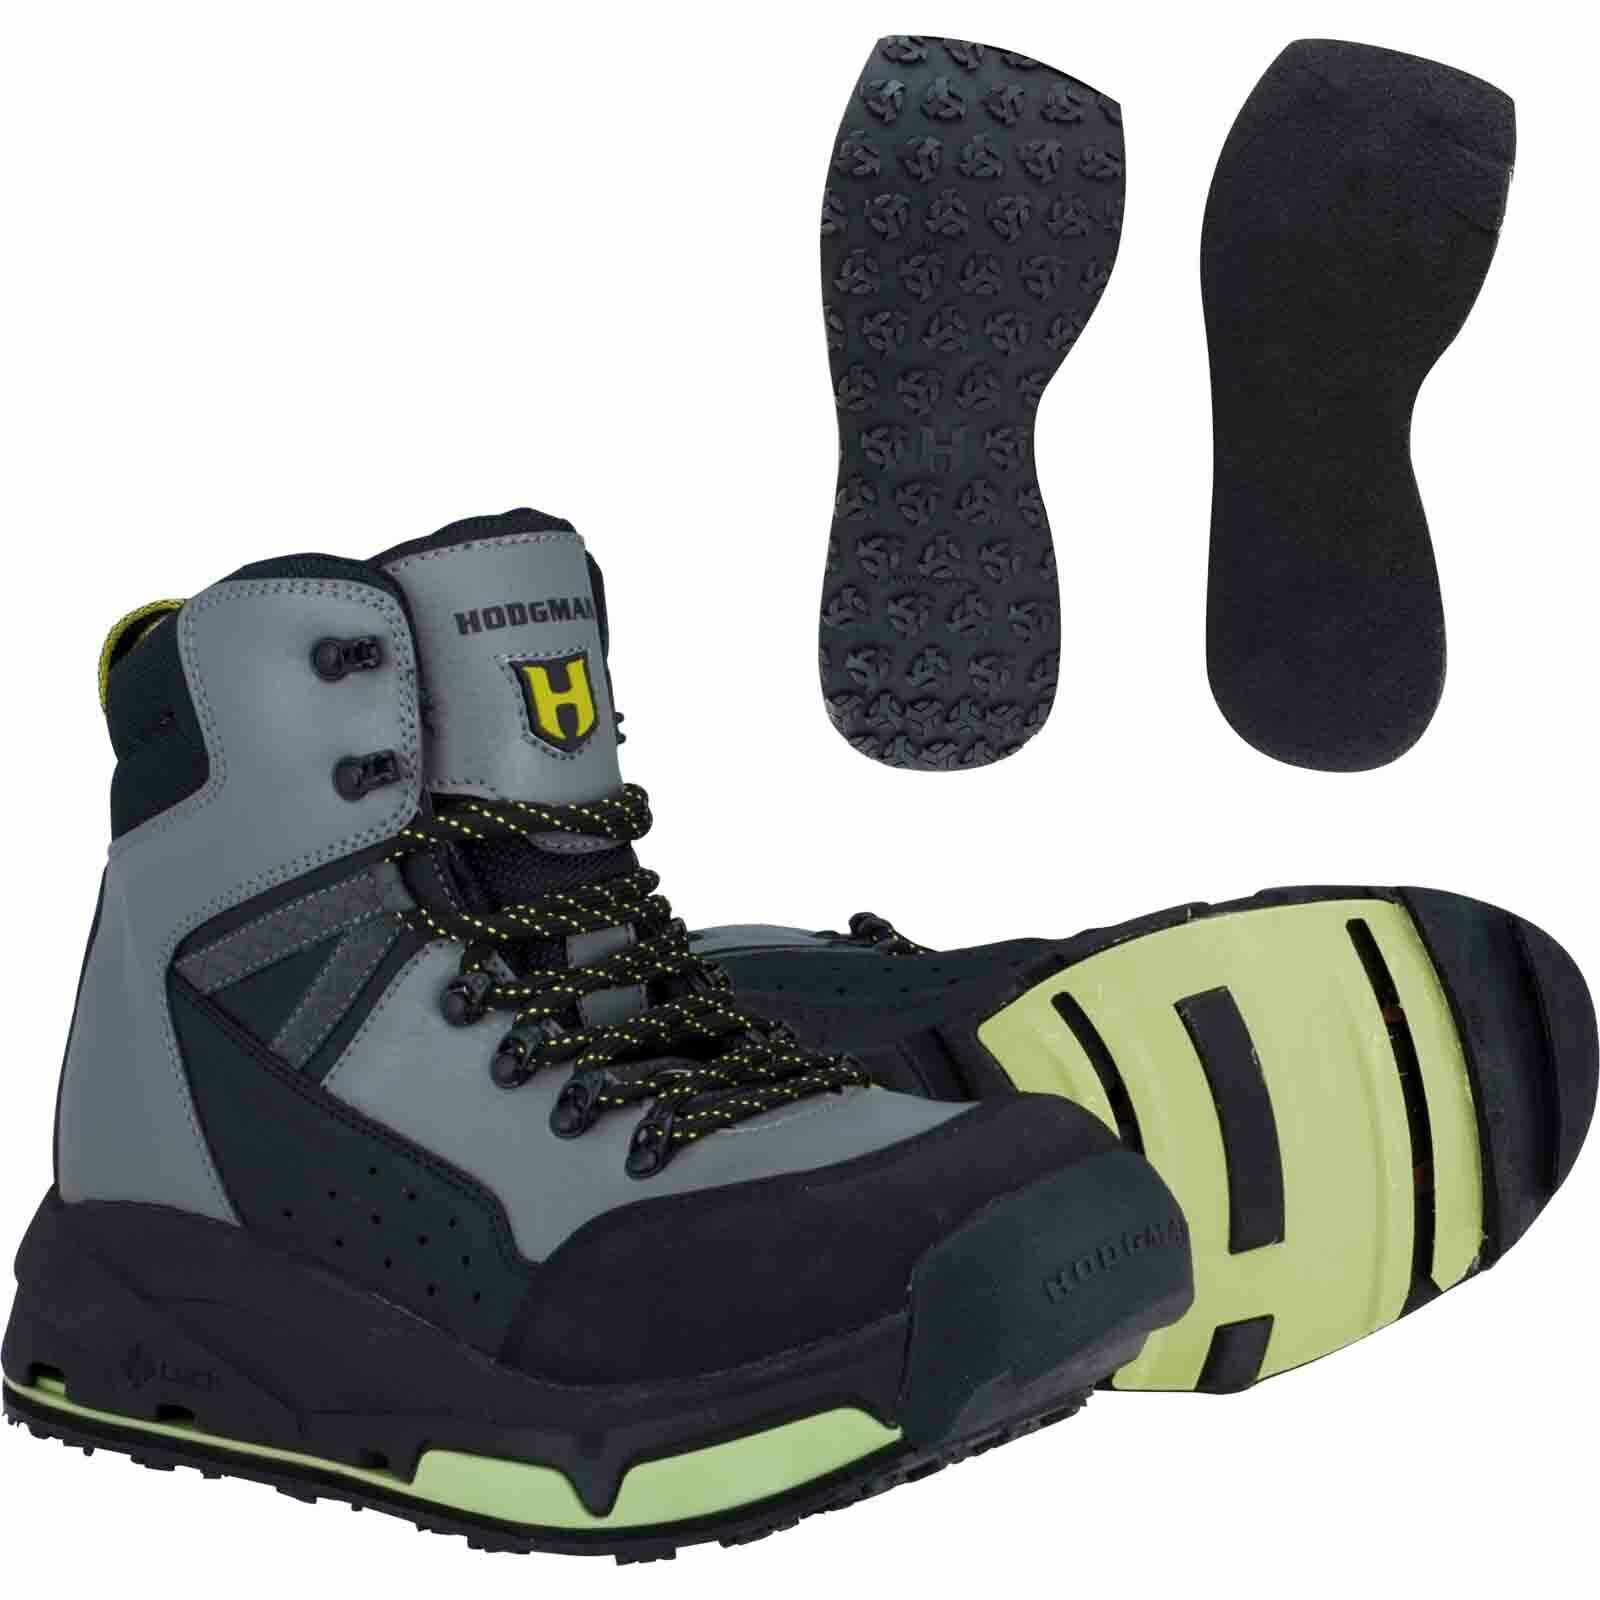 Hodgman H5 H-Lock Interchangeable System With Rubber & Felt Sole Wading Stiefel